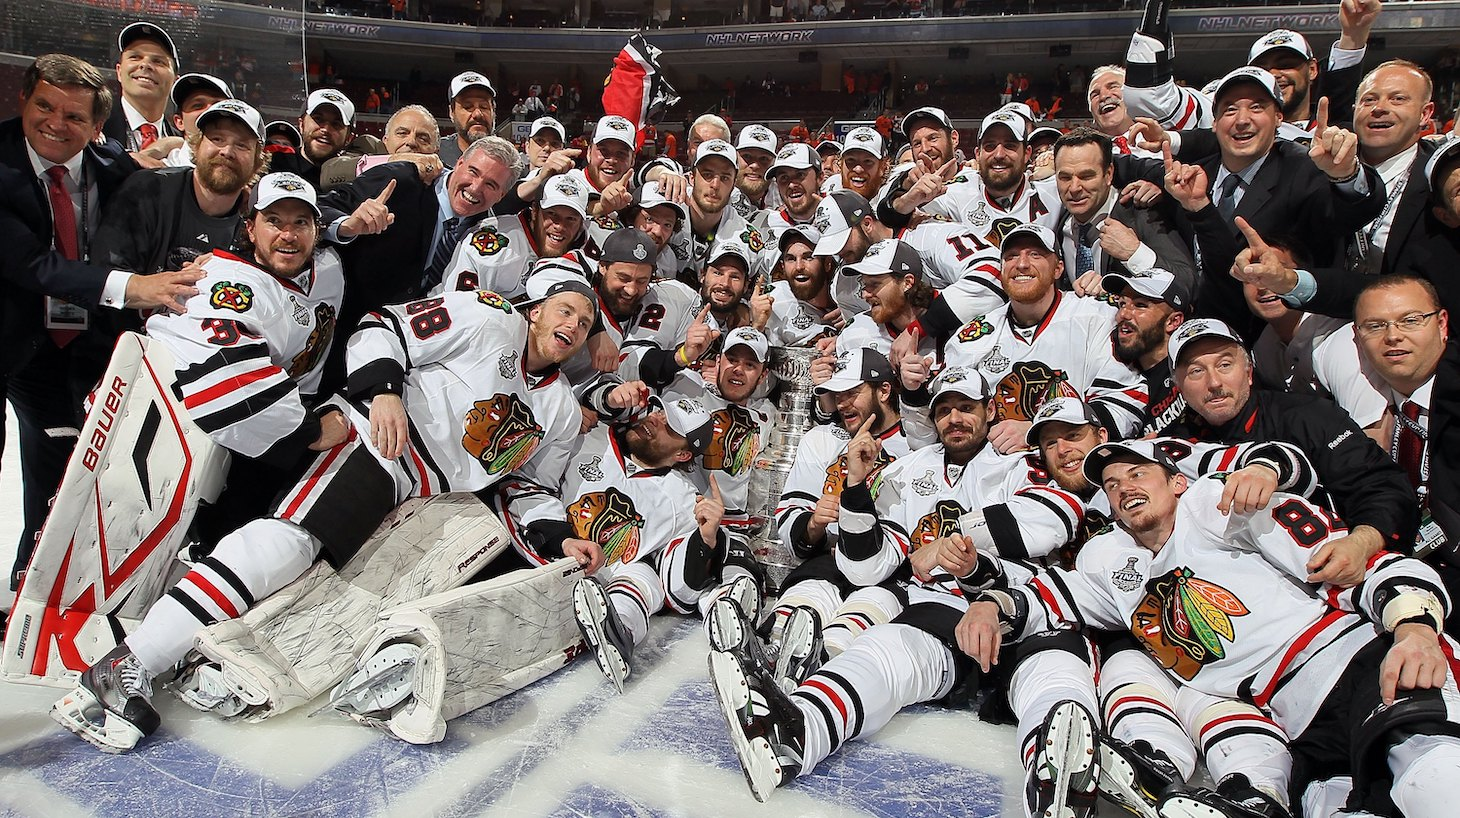 PHILADELPHIA - JUNE 09: The Chicago Blackhawks pose for a team photo after defeating the Philadelphia Flyers 4-3 in overtime and win the Stanley Cup in Game Six of the 2010 NHL Stanley Cup Final at the Wachovia Center on June 9, 2010 in Philadelphia, Pennsylvania. (Photo by Jim McIsaac/Getty Images)